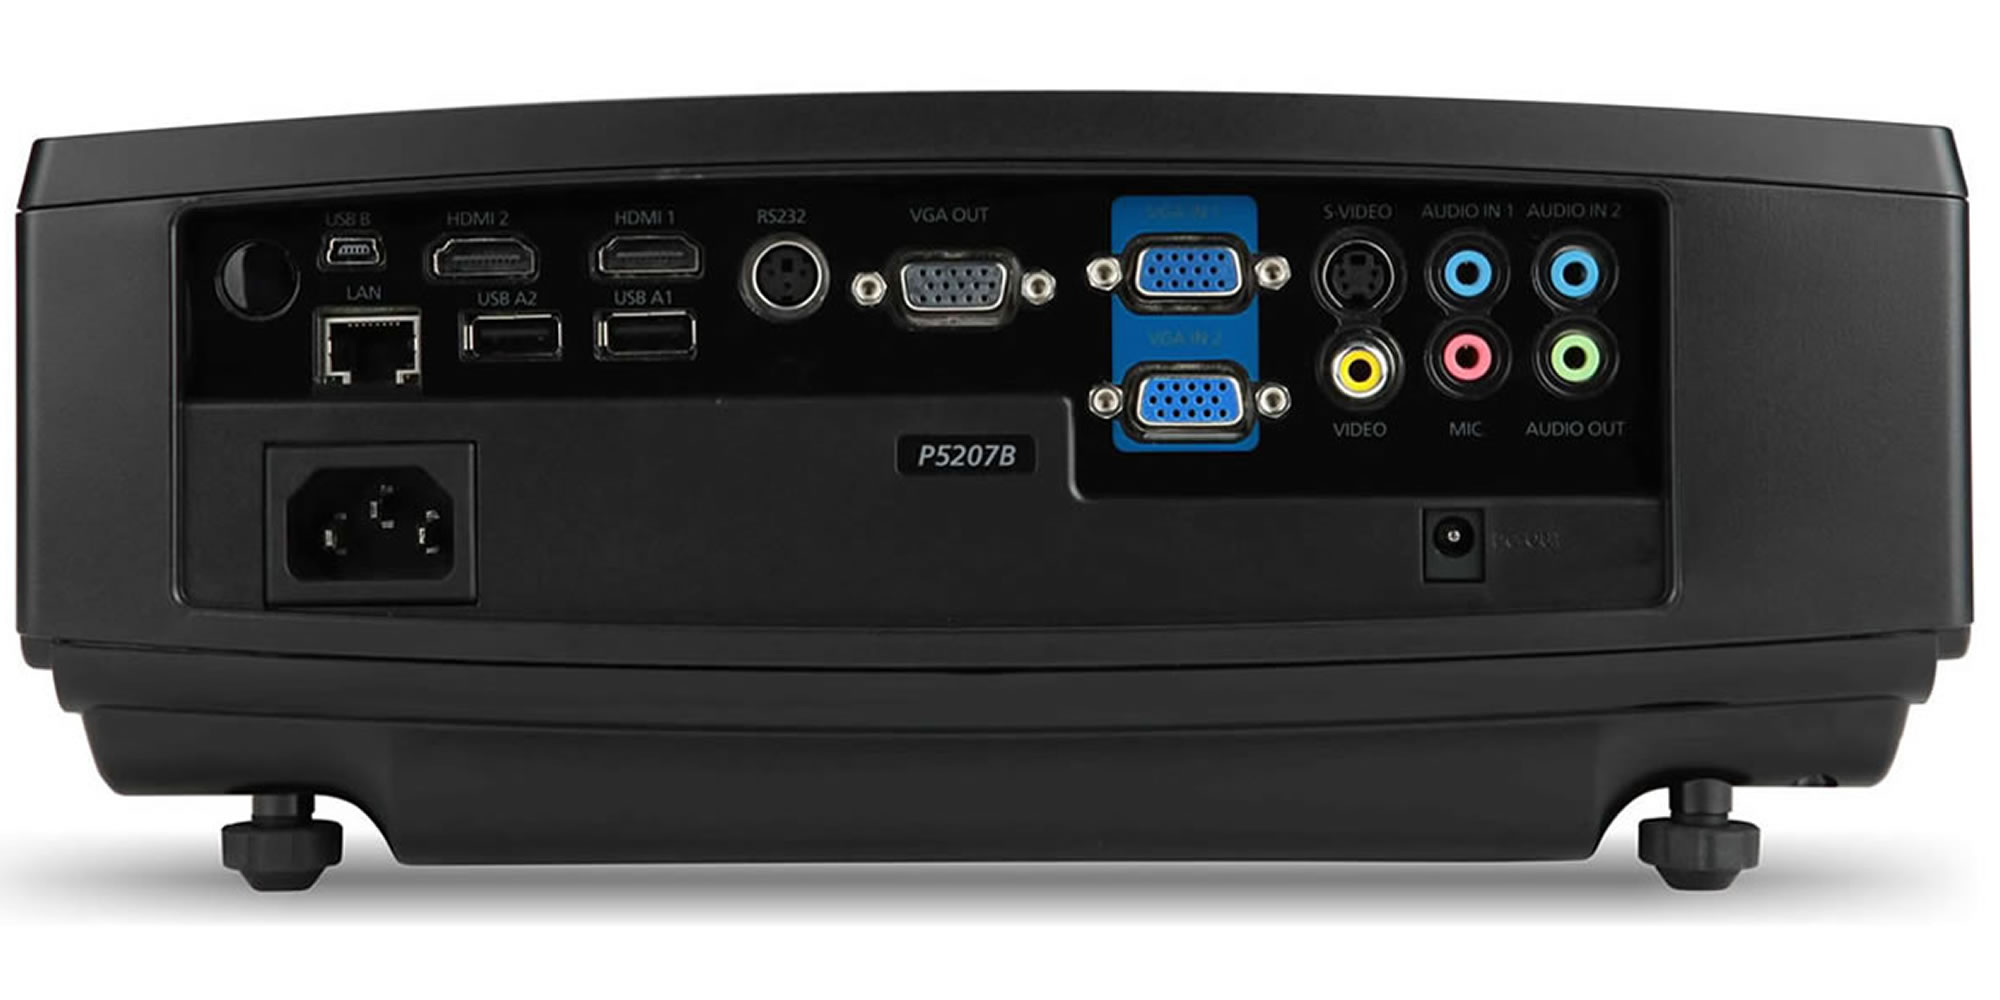 ACER P5207B Projector - Rear Inputs